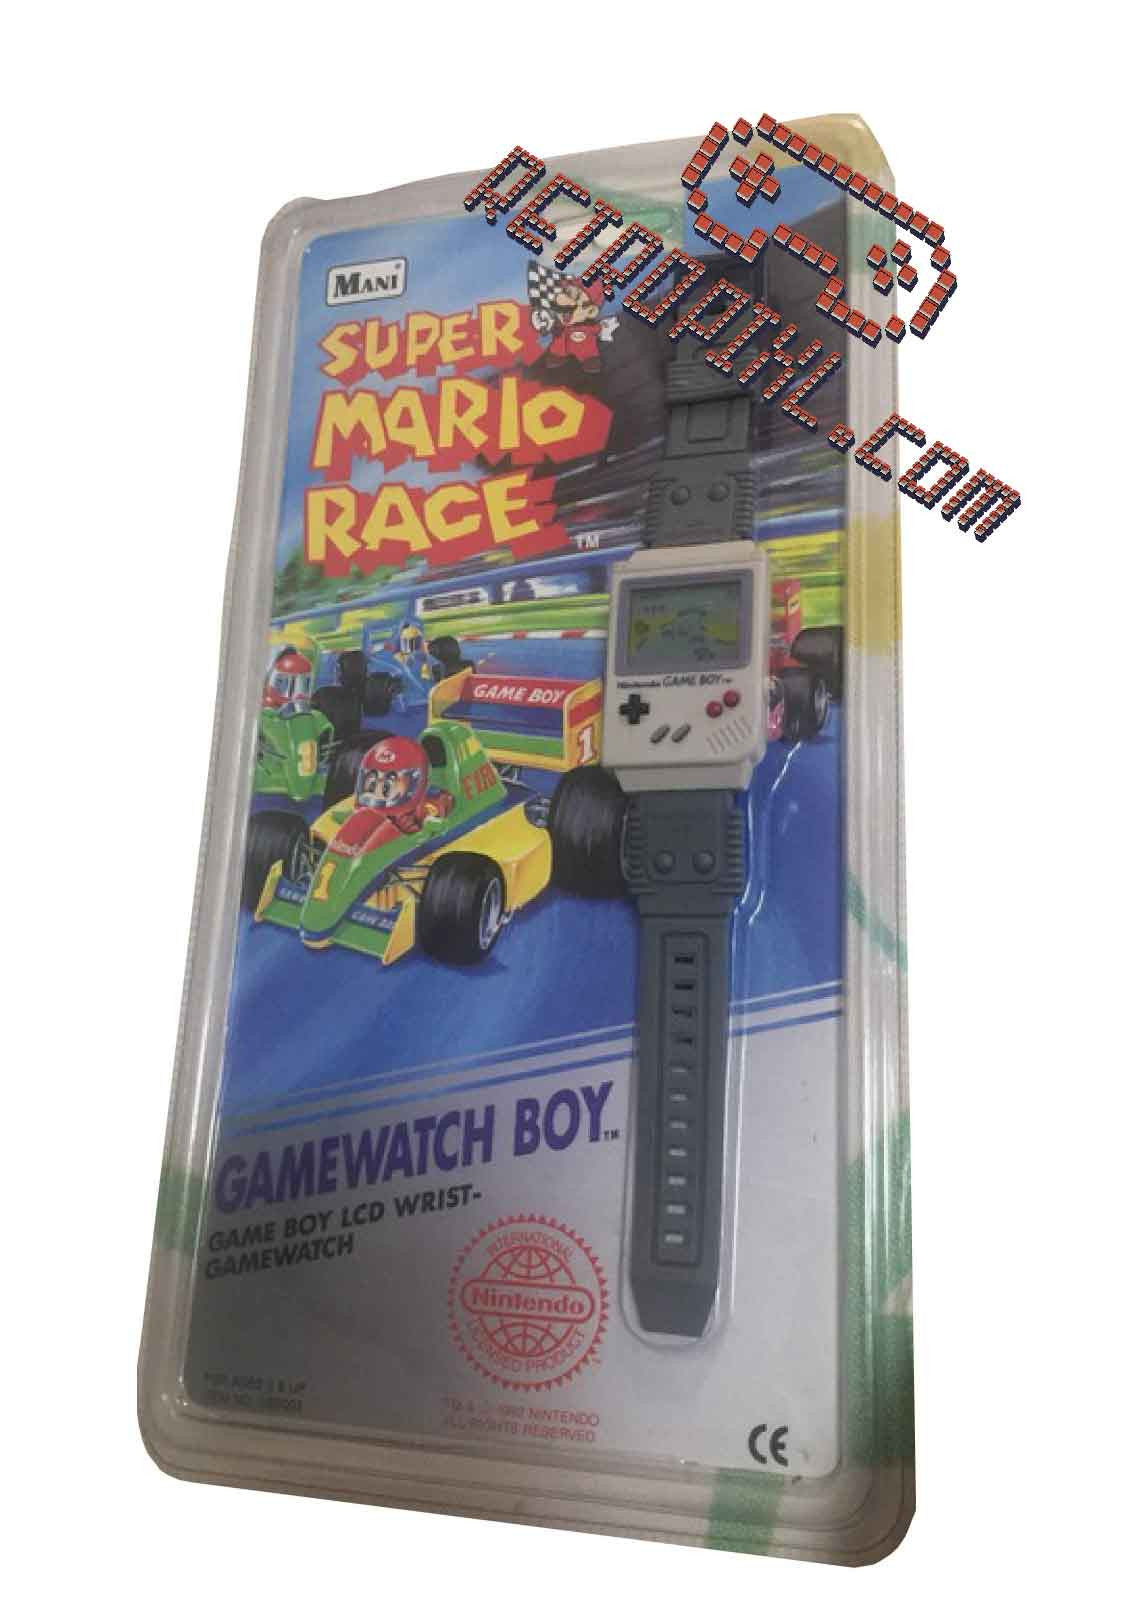 Nintendo Game Watch Boy Mario Race LIMITED EDITION